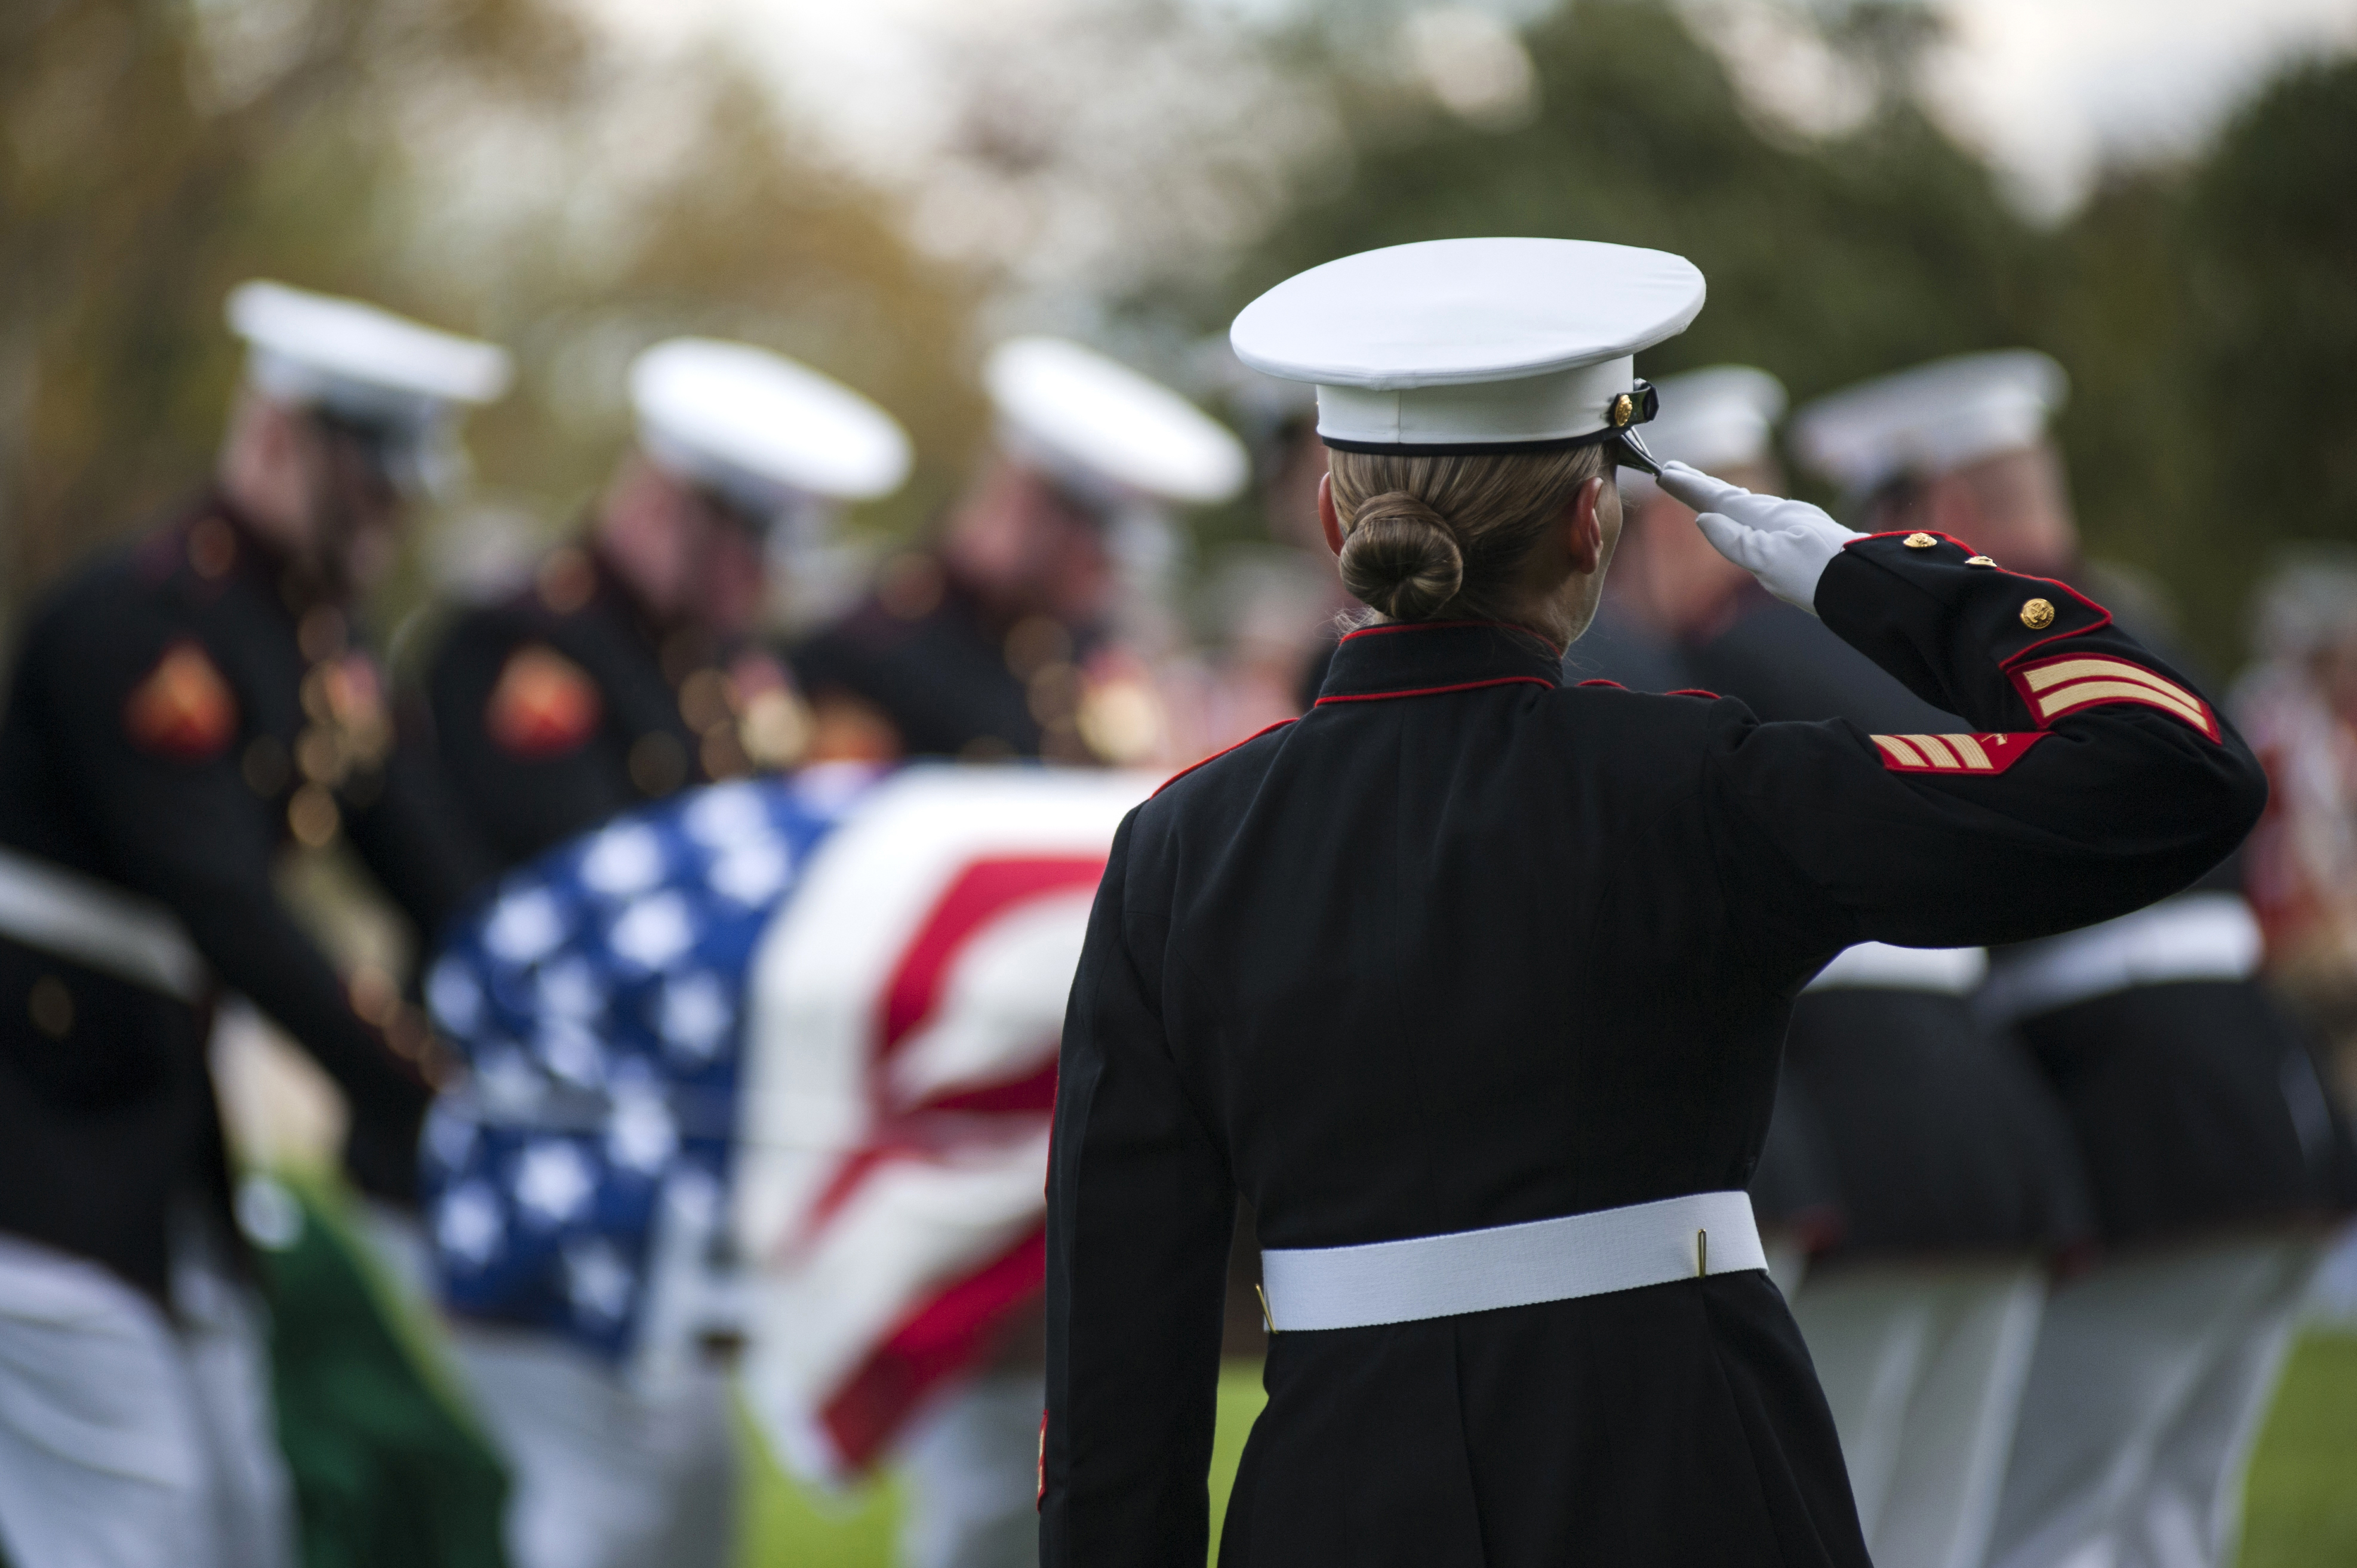 helicopter cpl with File U S  Marine Sgt  Katie Maynard Salutes As A Casket Is Lowered During A Funeral Ceremony At Arlington National Cemetery  Va   On 131024 M Fy706 201 on Infantry Officer Course At Mcas Yuma in addition File U S  Marines with Marine Light Attack Helicopter Squadron 367  HMLA 367  conducts maintenance inspections on a UH 1Y helicopter at Pohakuloa Training Area  PTA   Hawaii  May 11  2013 130511 M SD704 047 furthermore Eurocopter Ec130 B4 as well File U S  Marine Sgt  Katie Maynard salutes as a casket is lowered during a funeral ceremony at Arlington National Cemetery  Va   on 131024 M FY706 201 additionally Airfield traffic pattern.